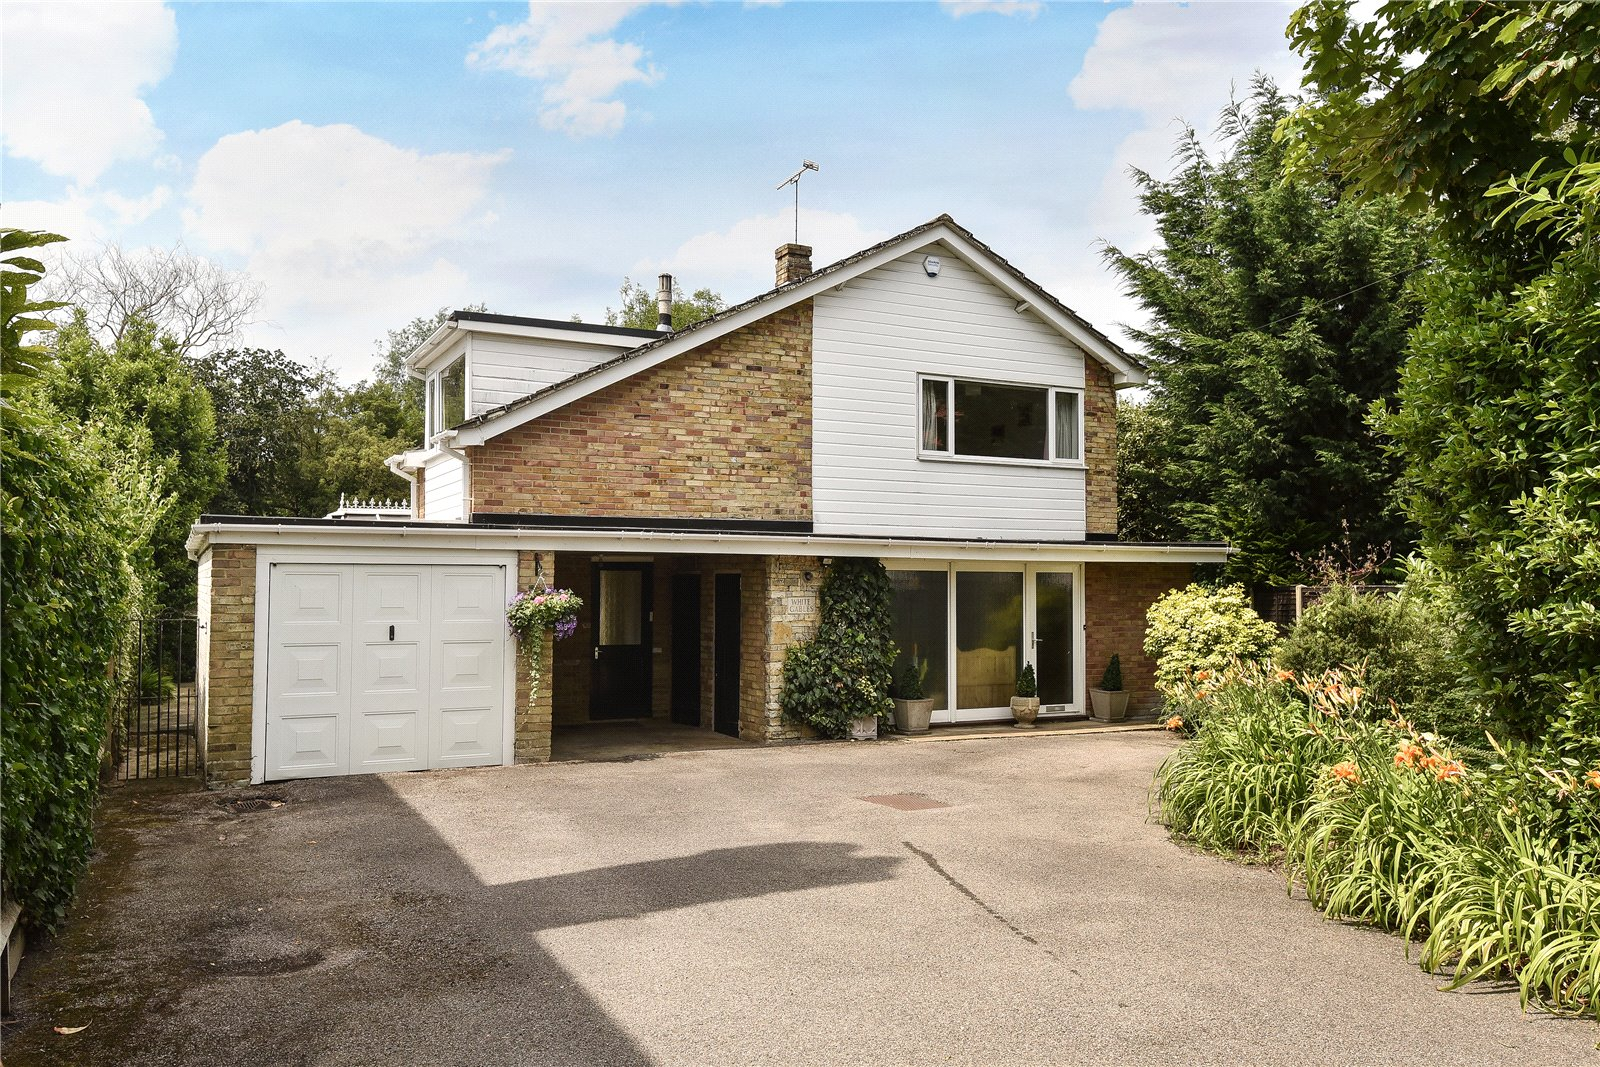 4 Bedrooms Detached House for sale in High Street, Sandhurst, Berkshire, GU47